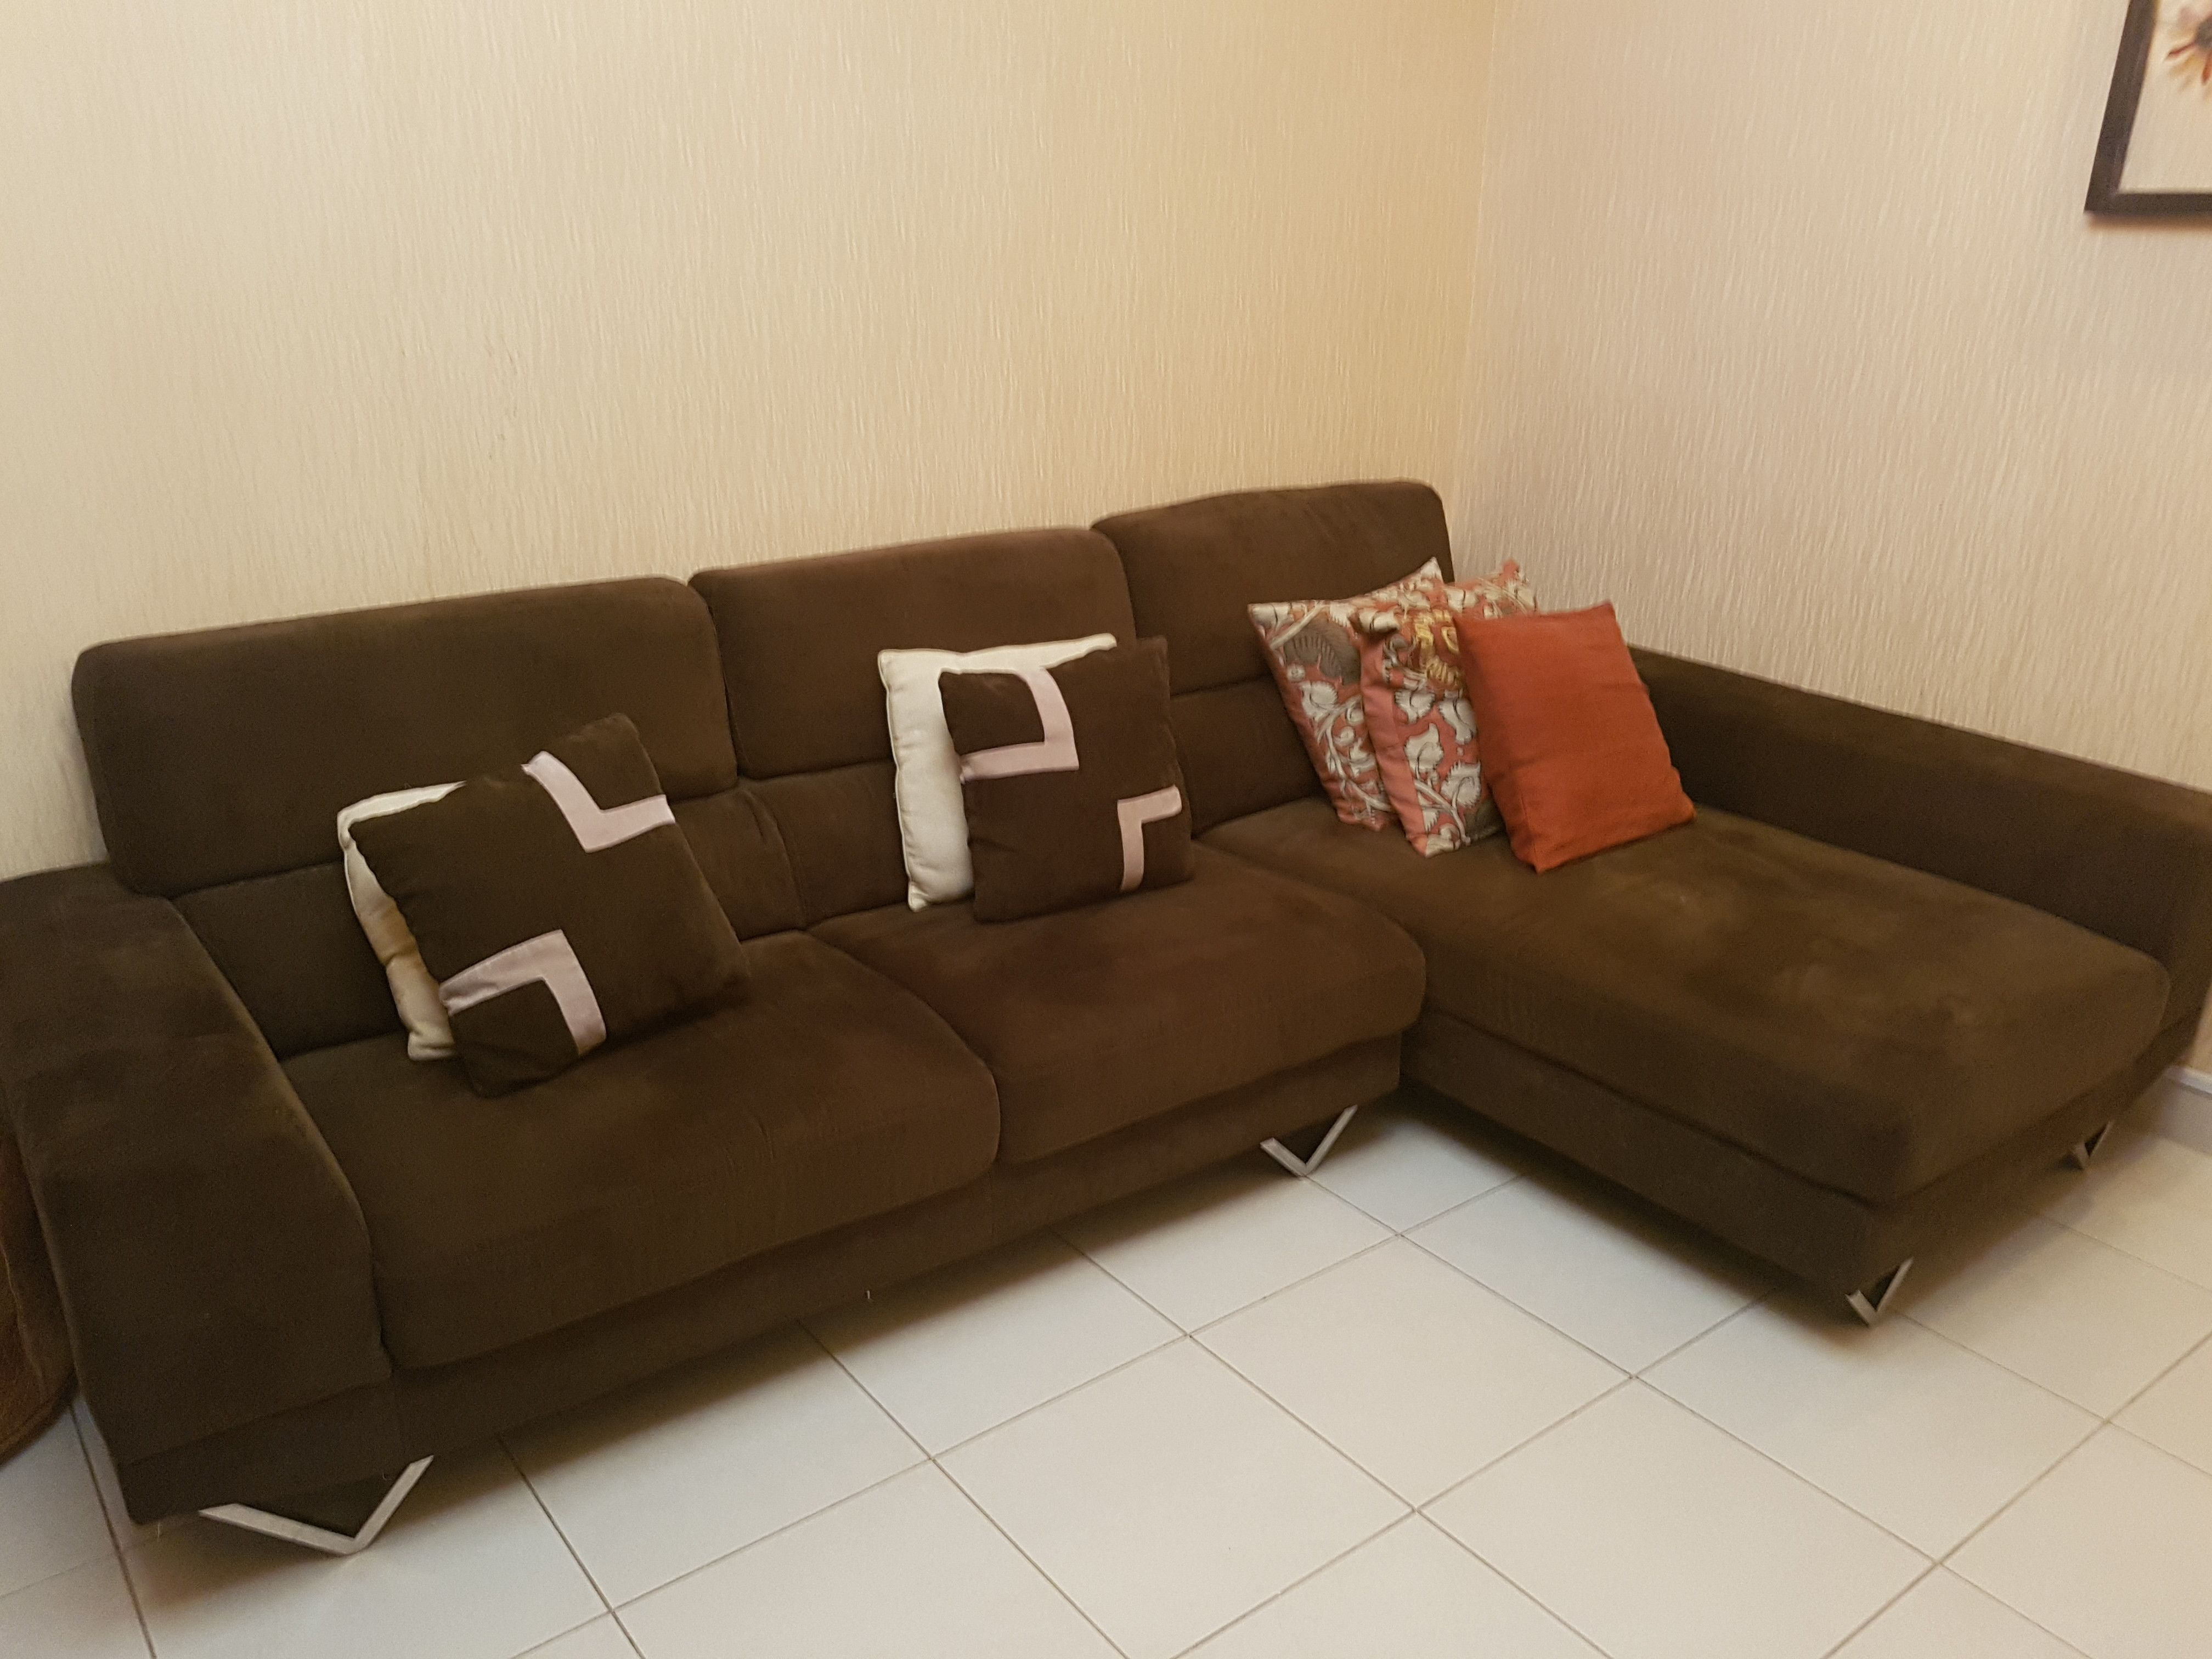 L Shape Sofa From Home Center Very Comfortable Dubai Uae Storat